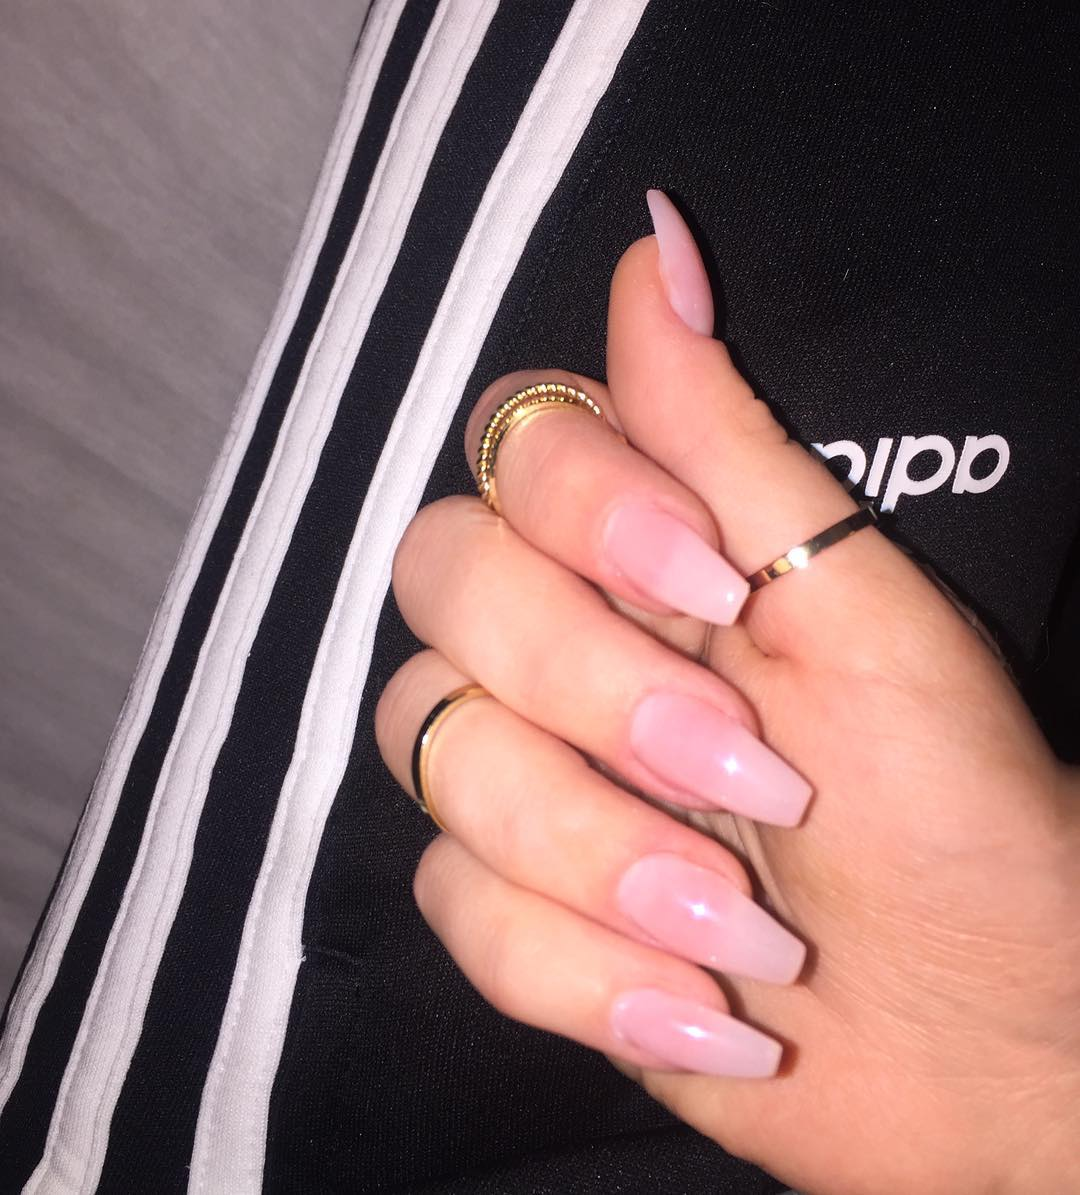 style adidas, nails goals, inspiration girly and claws inspo